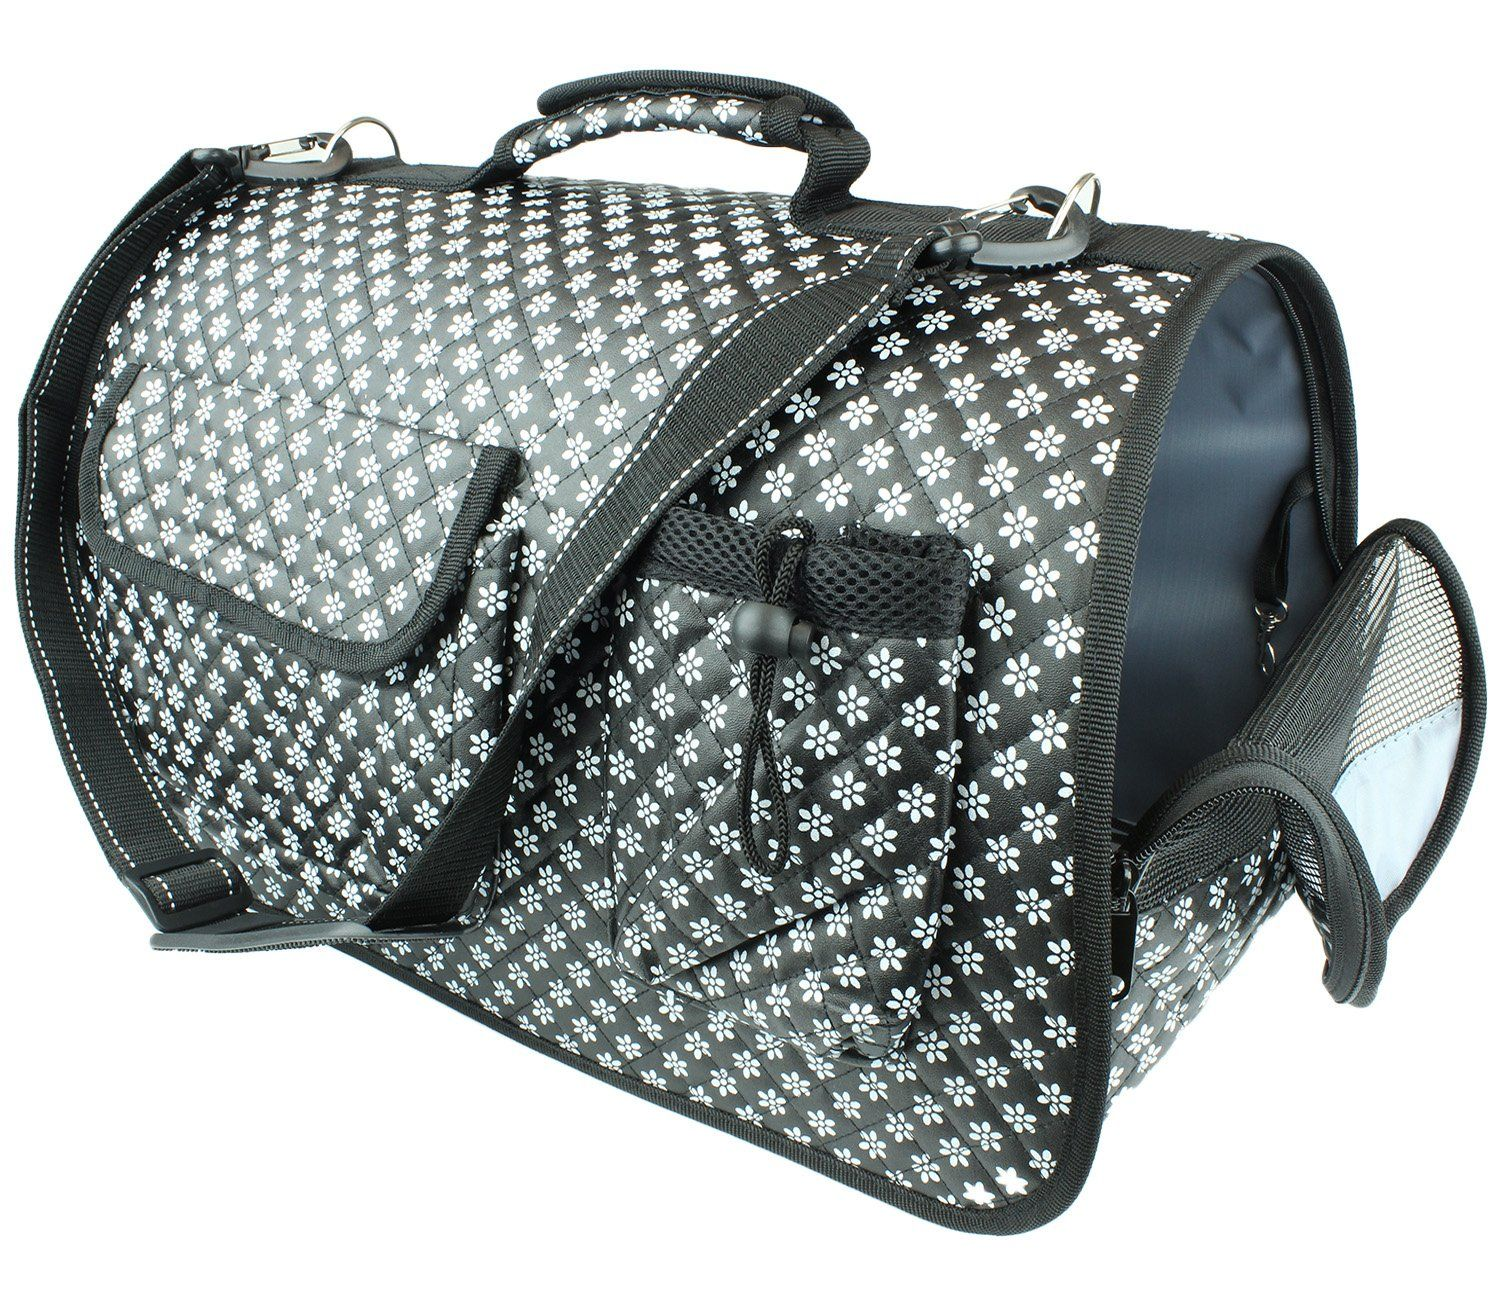 Soft Sided Pet Carrier For Dogs And Cats Airline Approved Travel